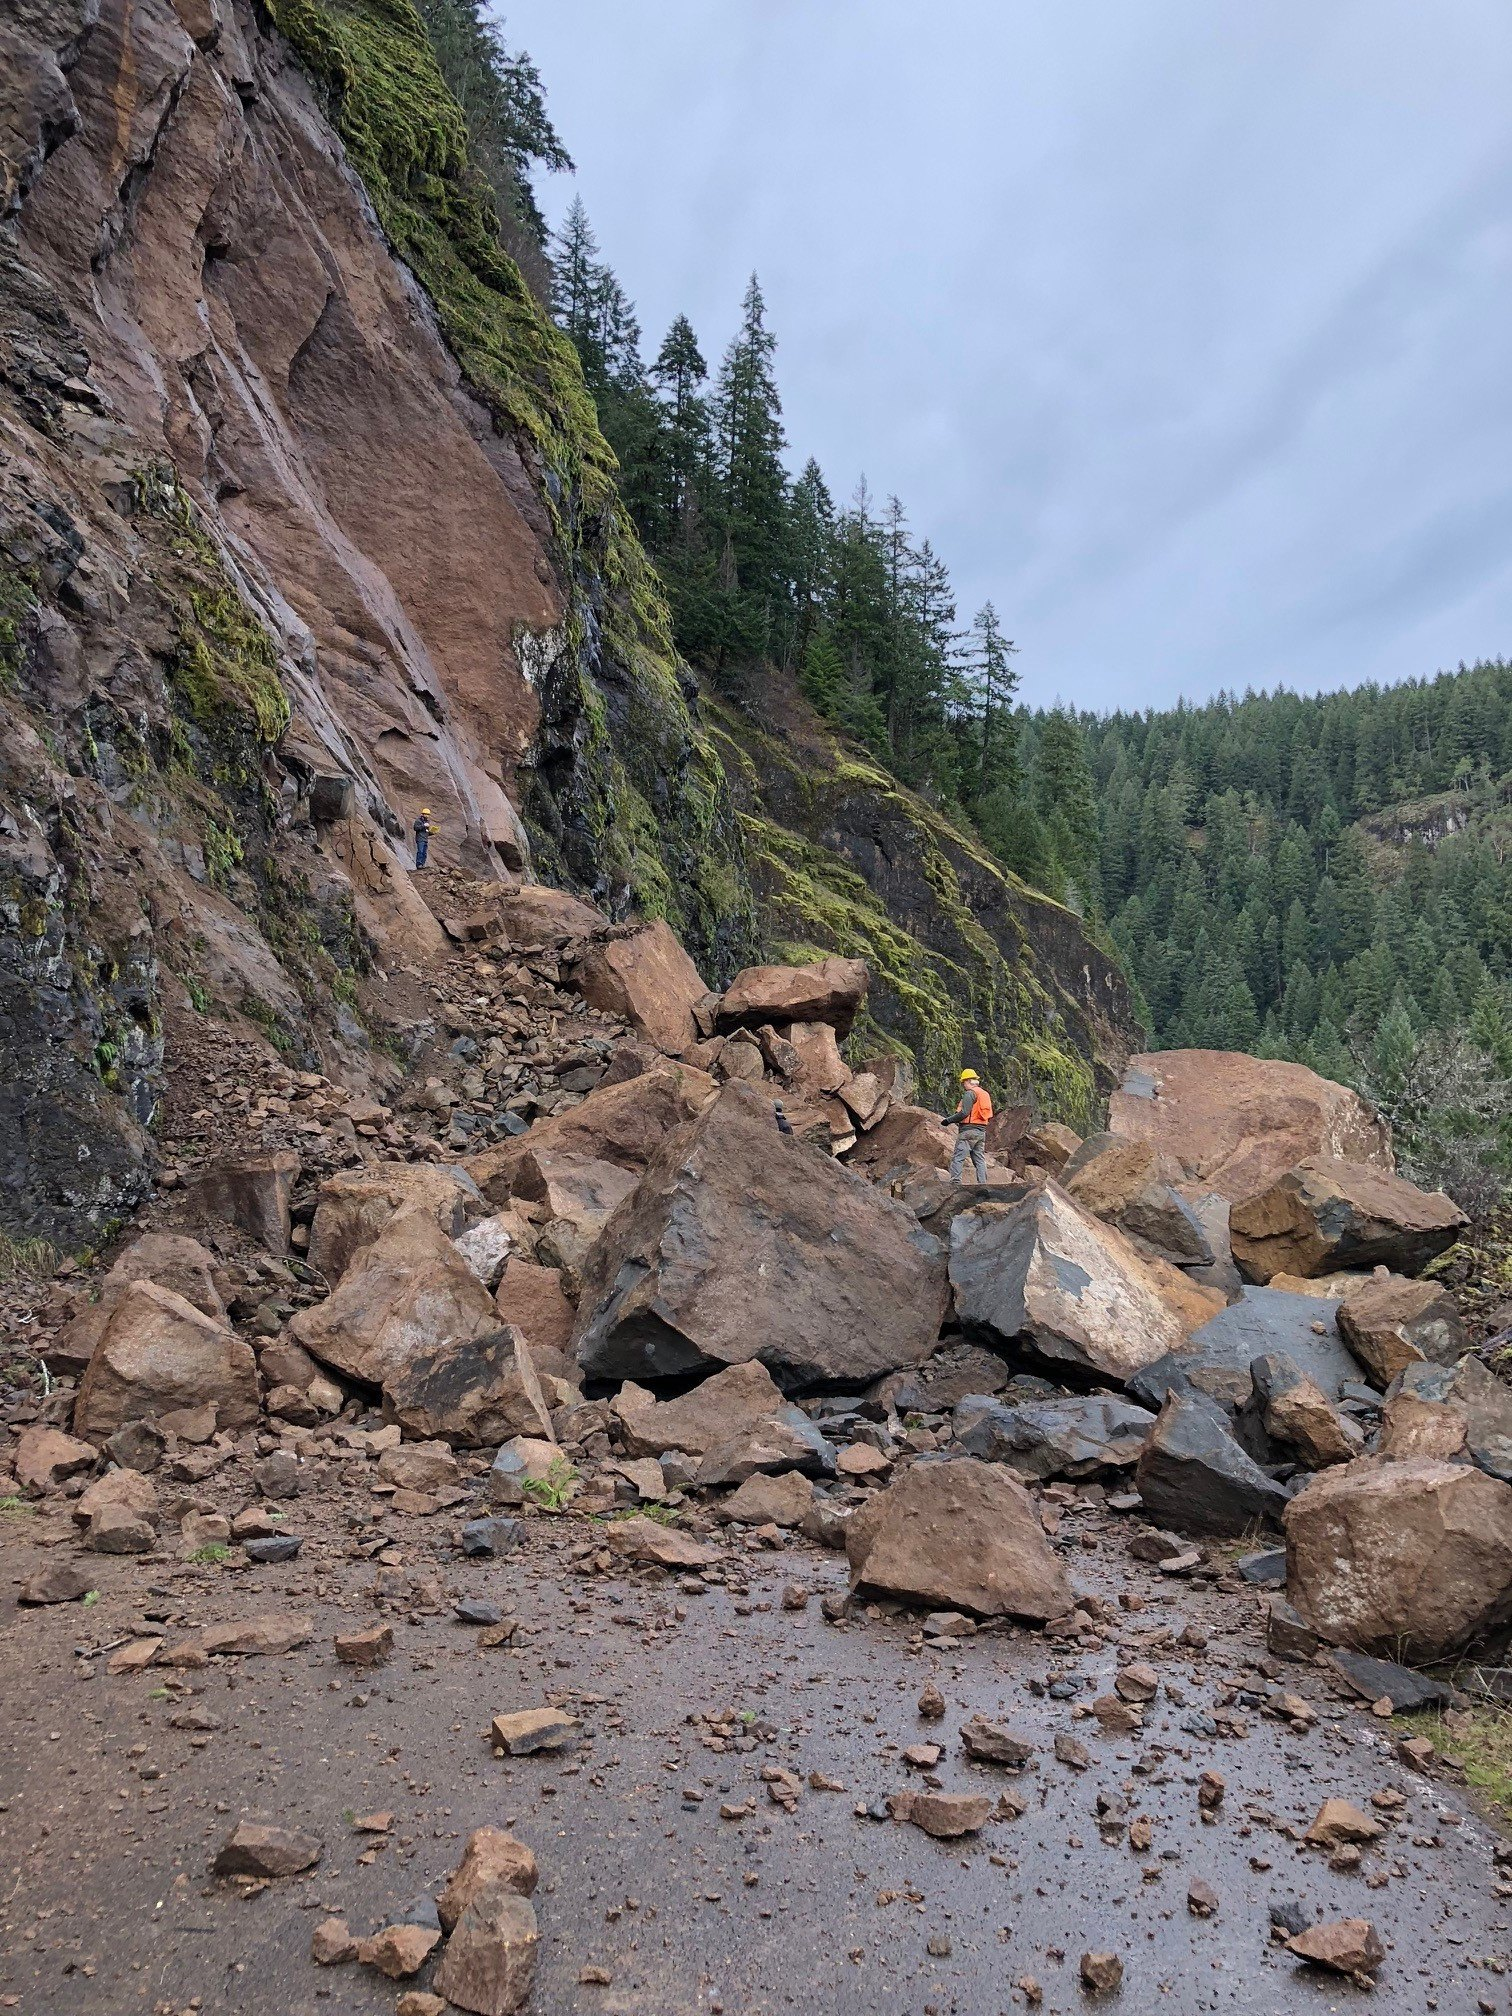 "The landslide has piled rocks 30 feet high across a 250-foot stretch of road, according to the Forest Service. Geologists and engineers visited the slide on December 28. ""Their plan is to have specialists loosen the material still perched above what has fallen onto the road and then, as soon as possible, remove the approximately 8,000 cubic yards of rock that are on the road bed,"" according to the Forest Service. (USDA Forest Service)"